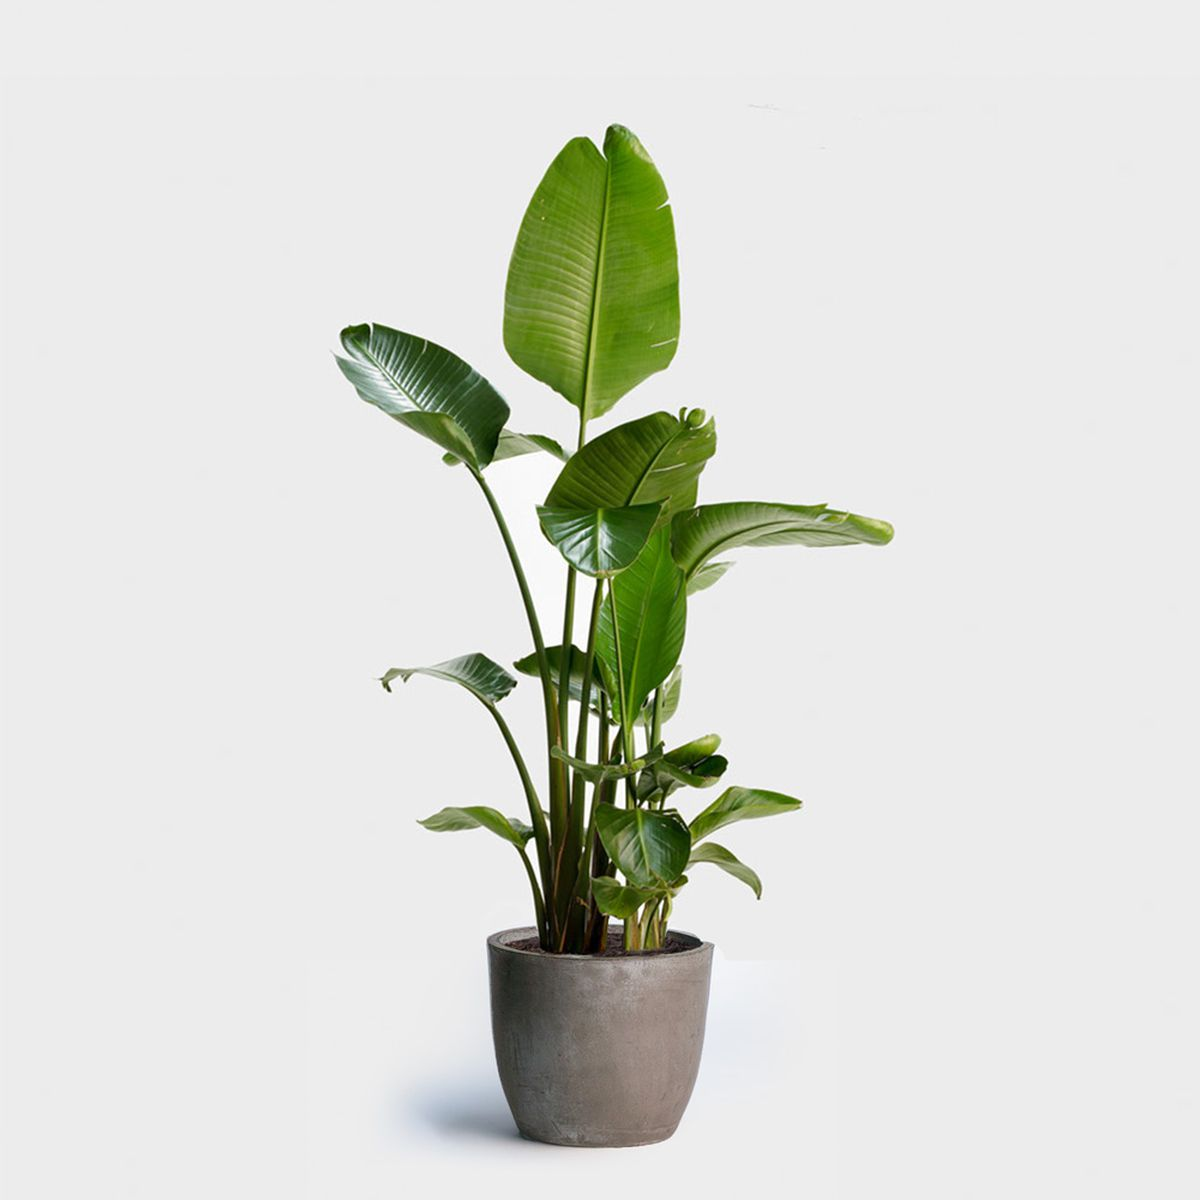 Small Household Plants Buy Indoor Plants Online At These Stores Curbed